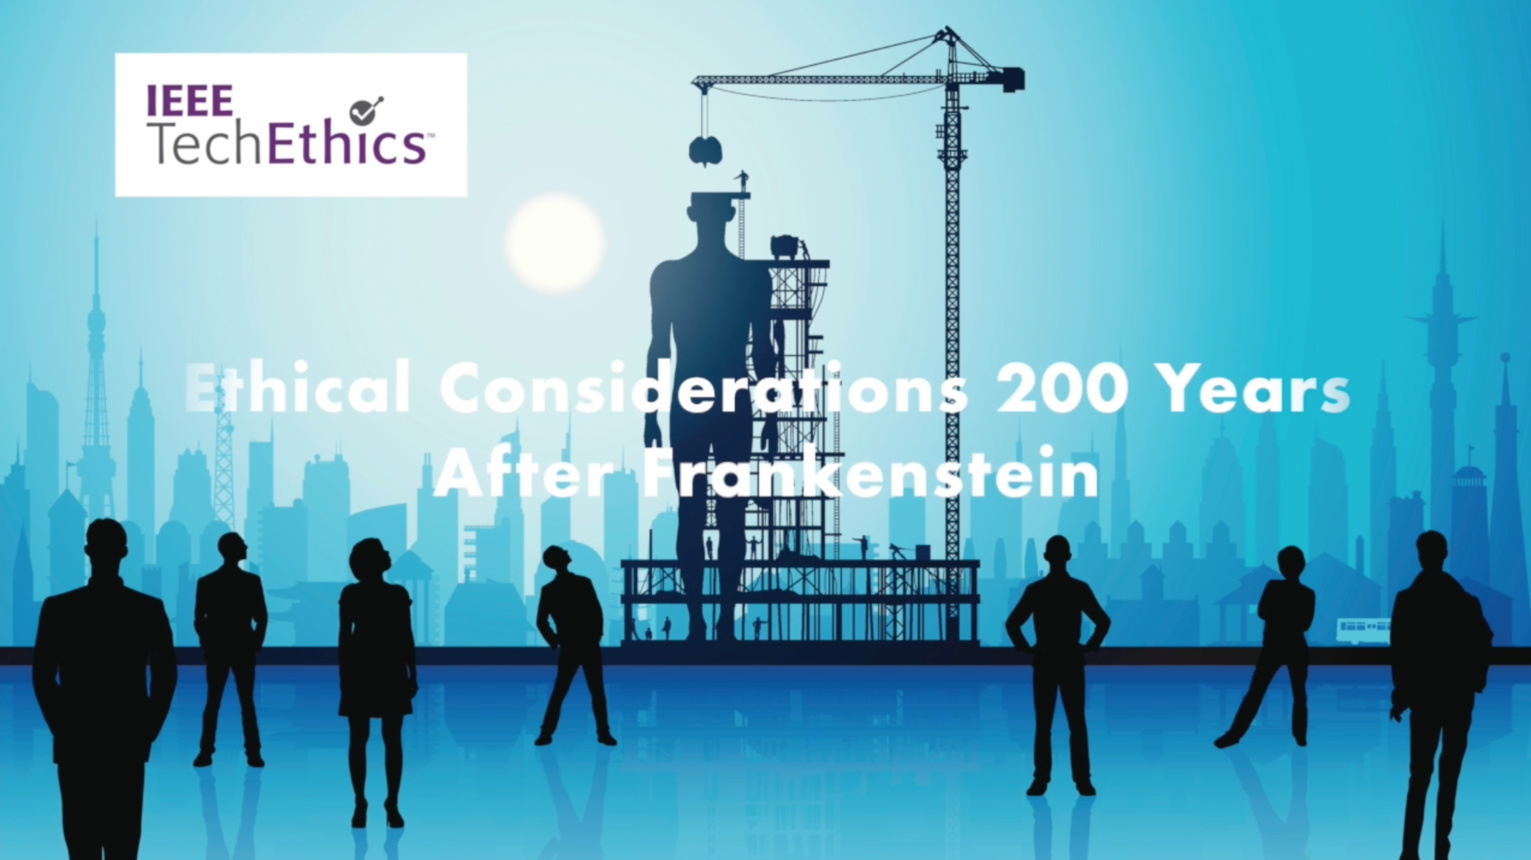 Ethical Considerations 200 Years After Frankenstein: IEEE TechEthics Virtual Panel